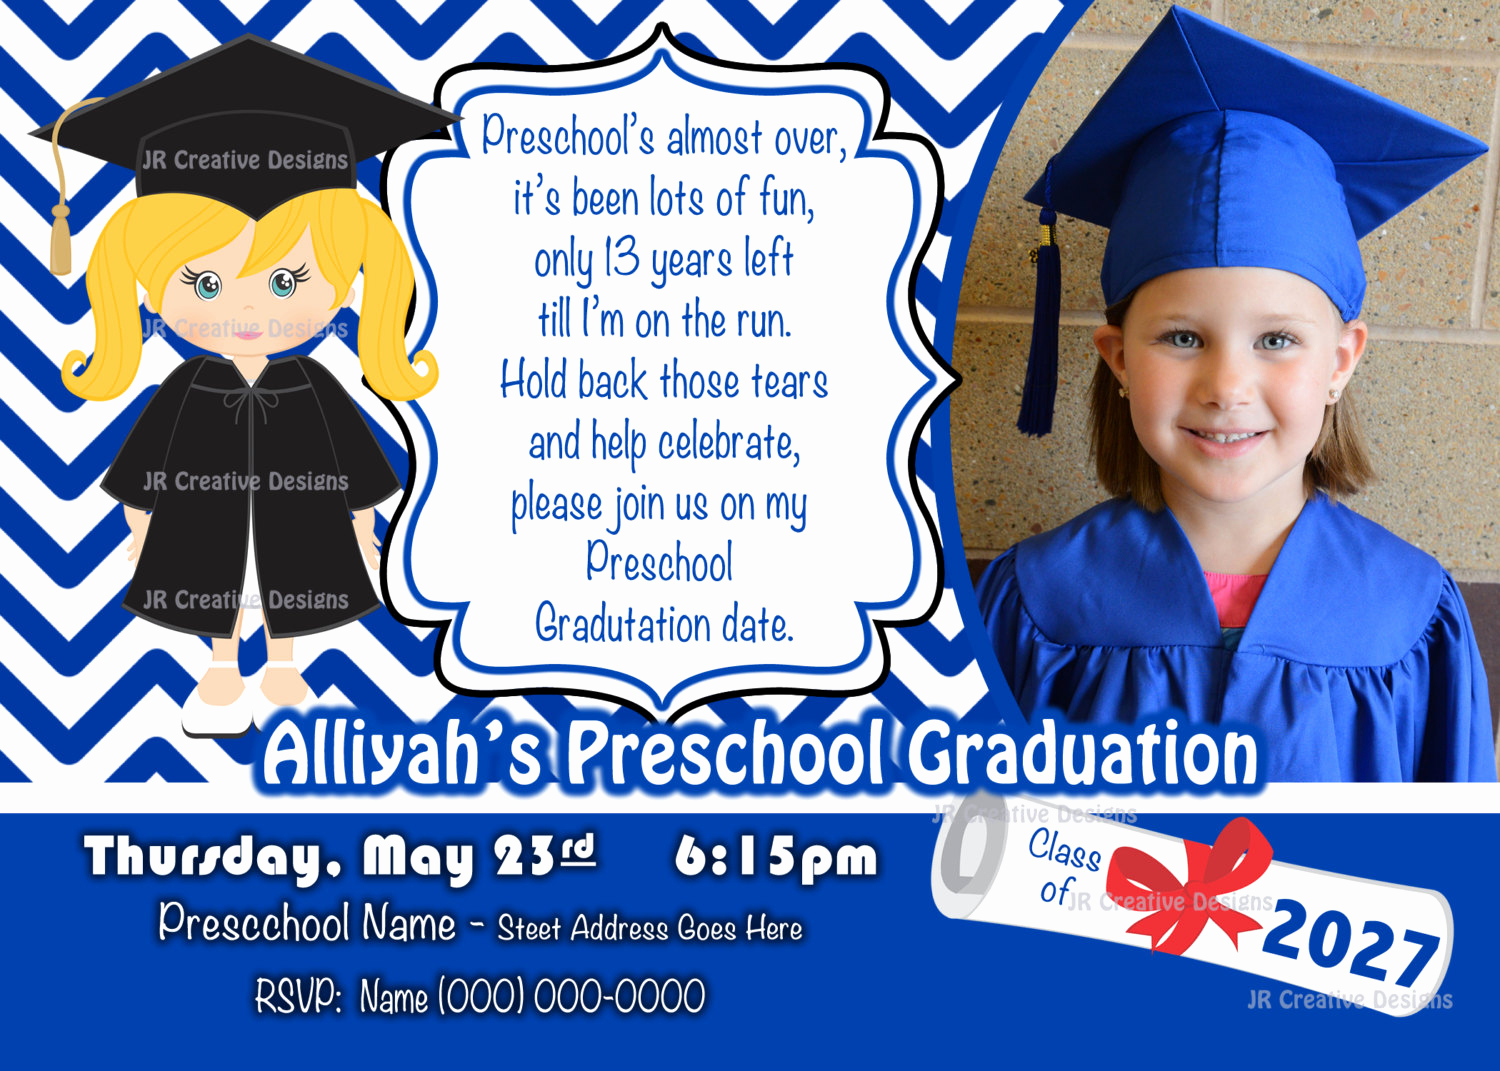 Kindergarten Graduation Invitation Wording Beautiful Preschool Graduation Invitation Kindergarten Graduation